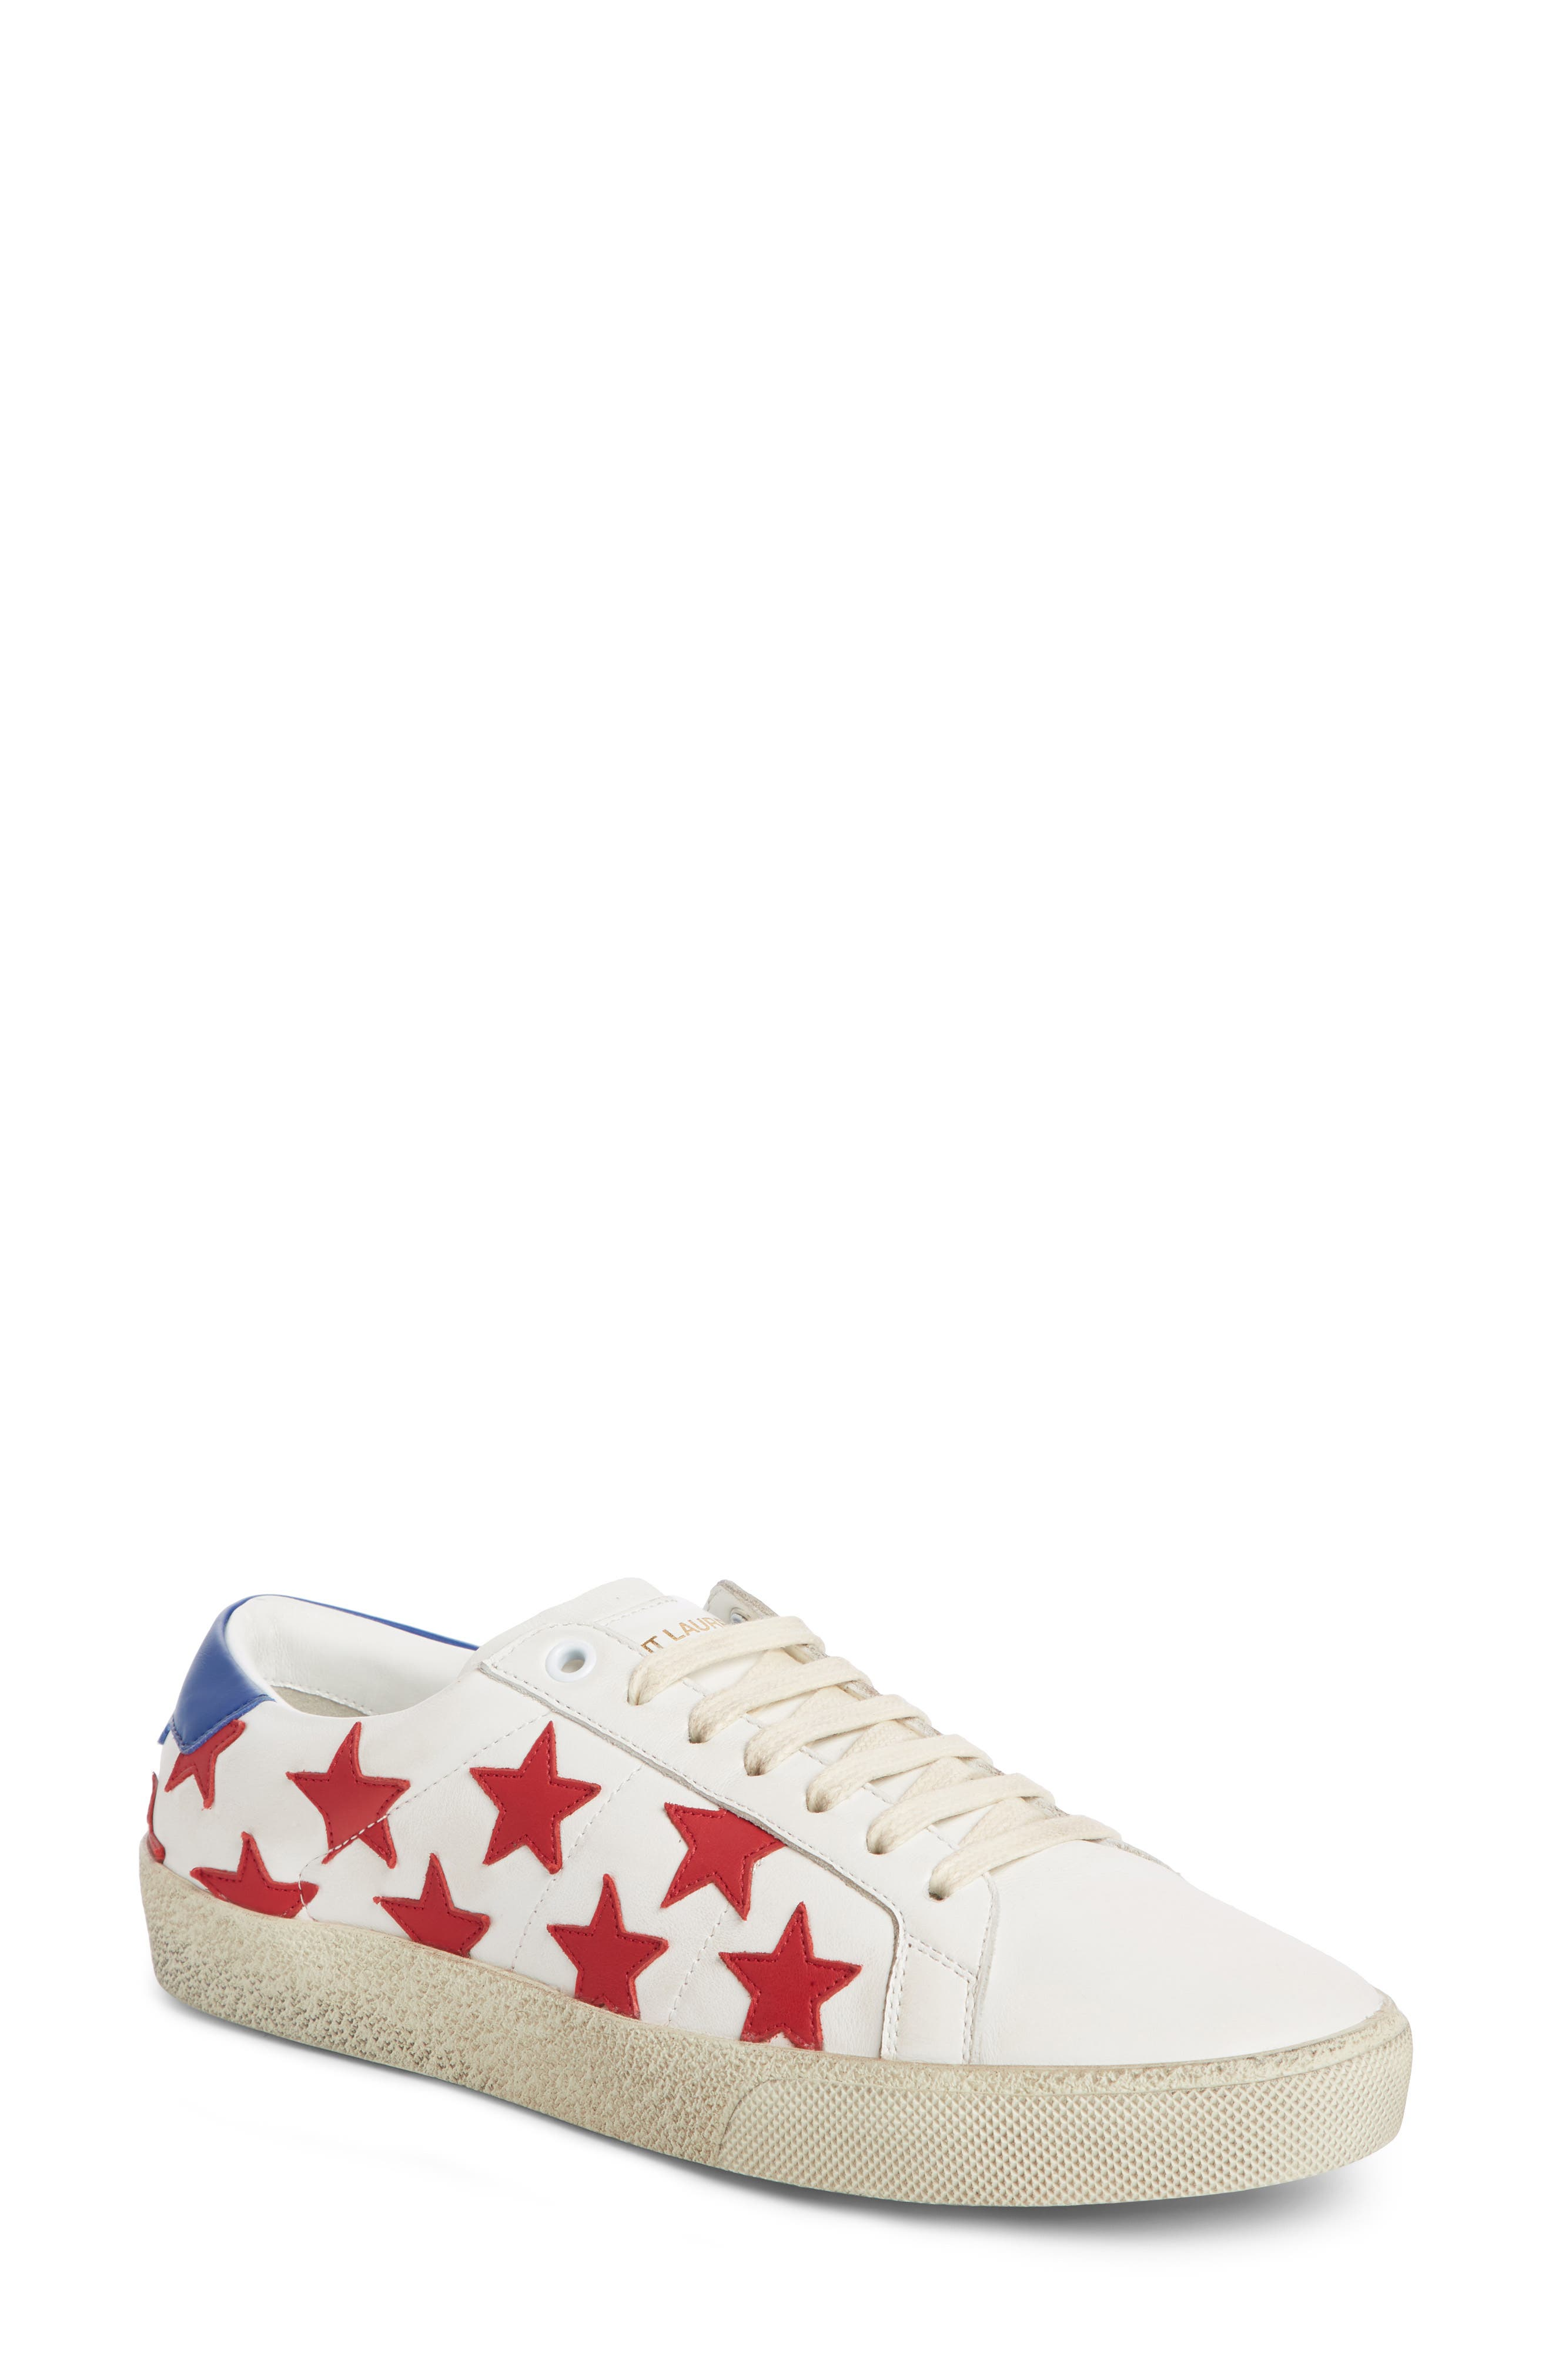 SAINT LAURENT, Classic Court Sneaker, Main thumbnail 1, color, WHITE/ RED